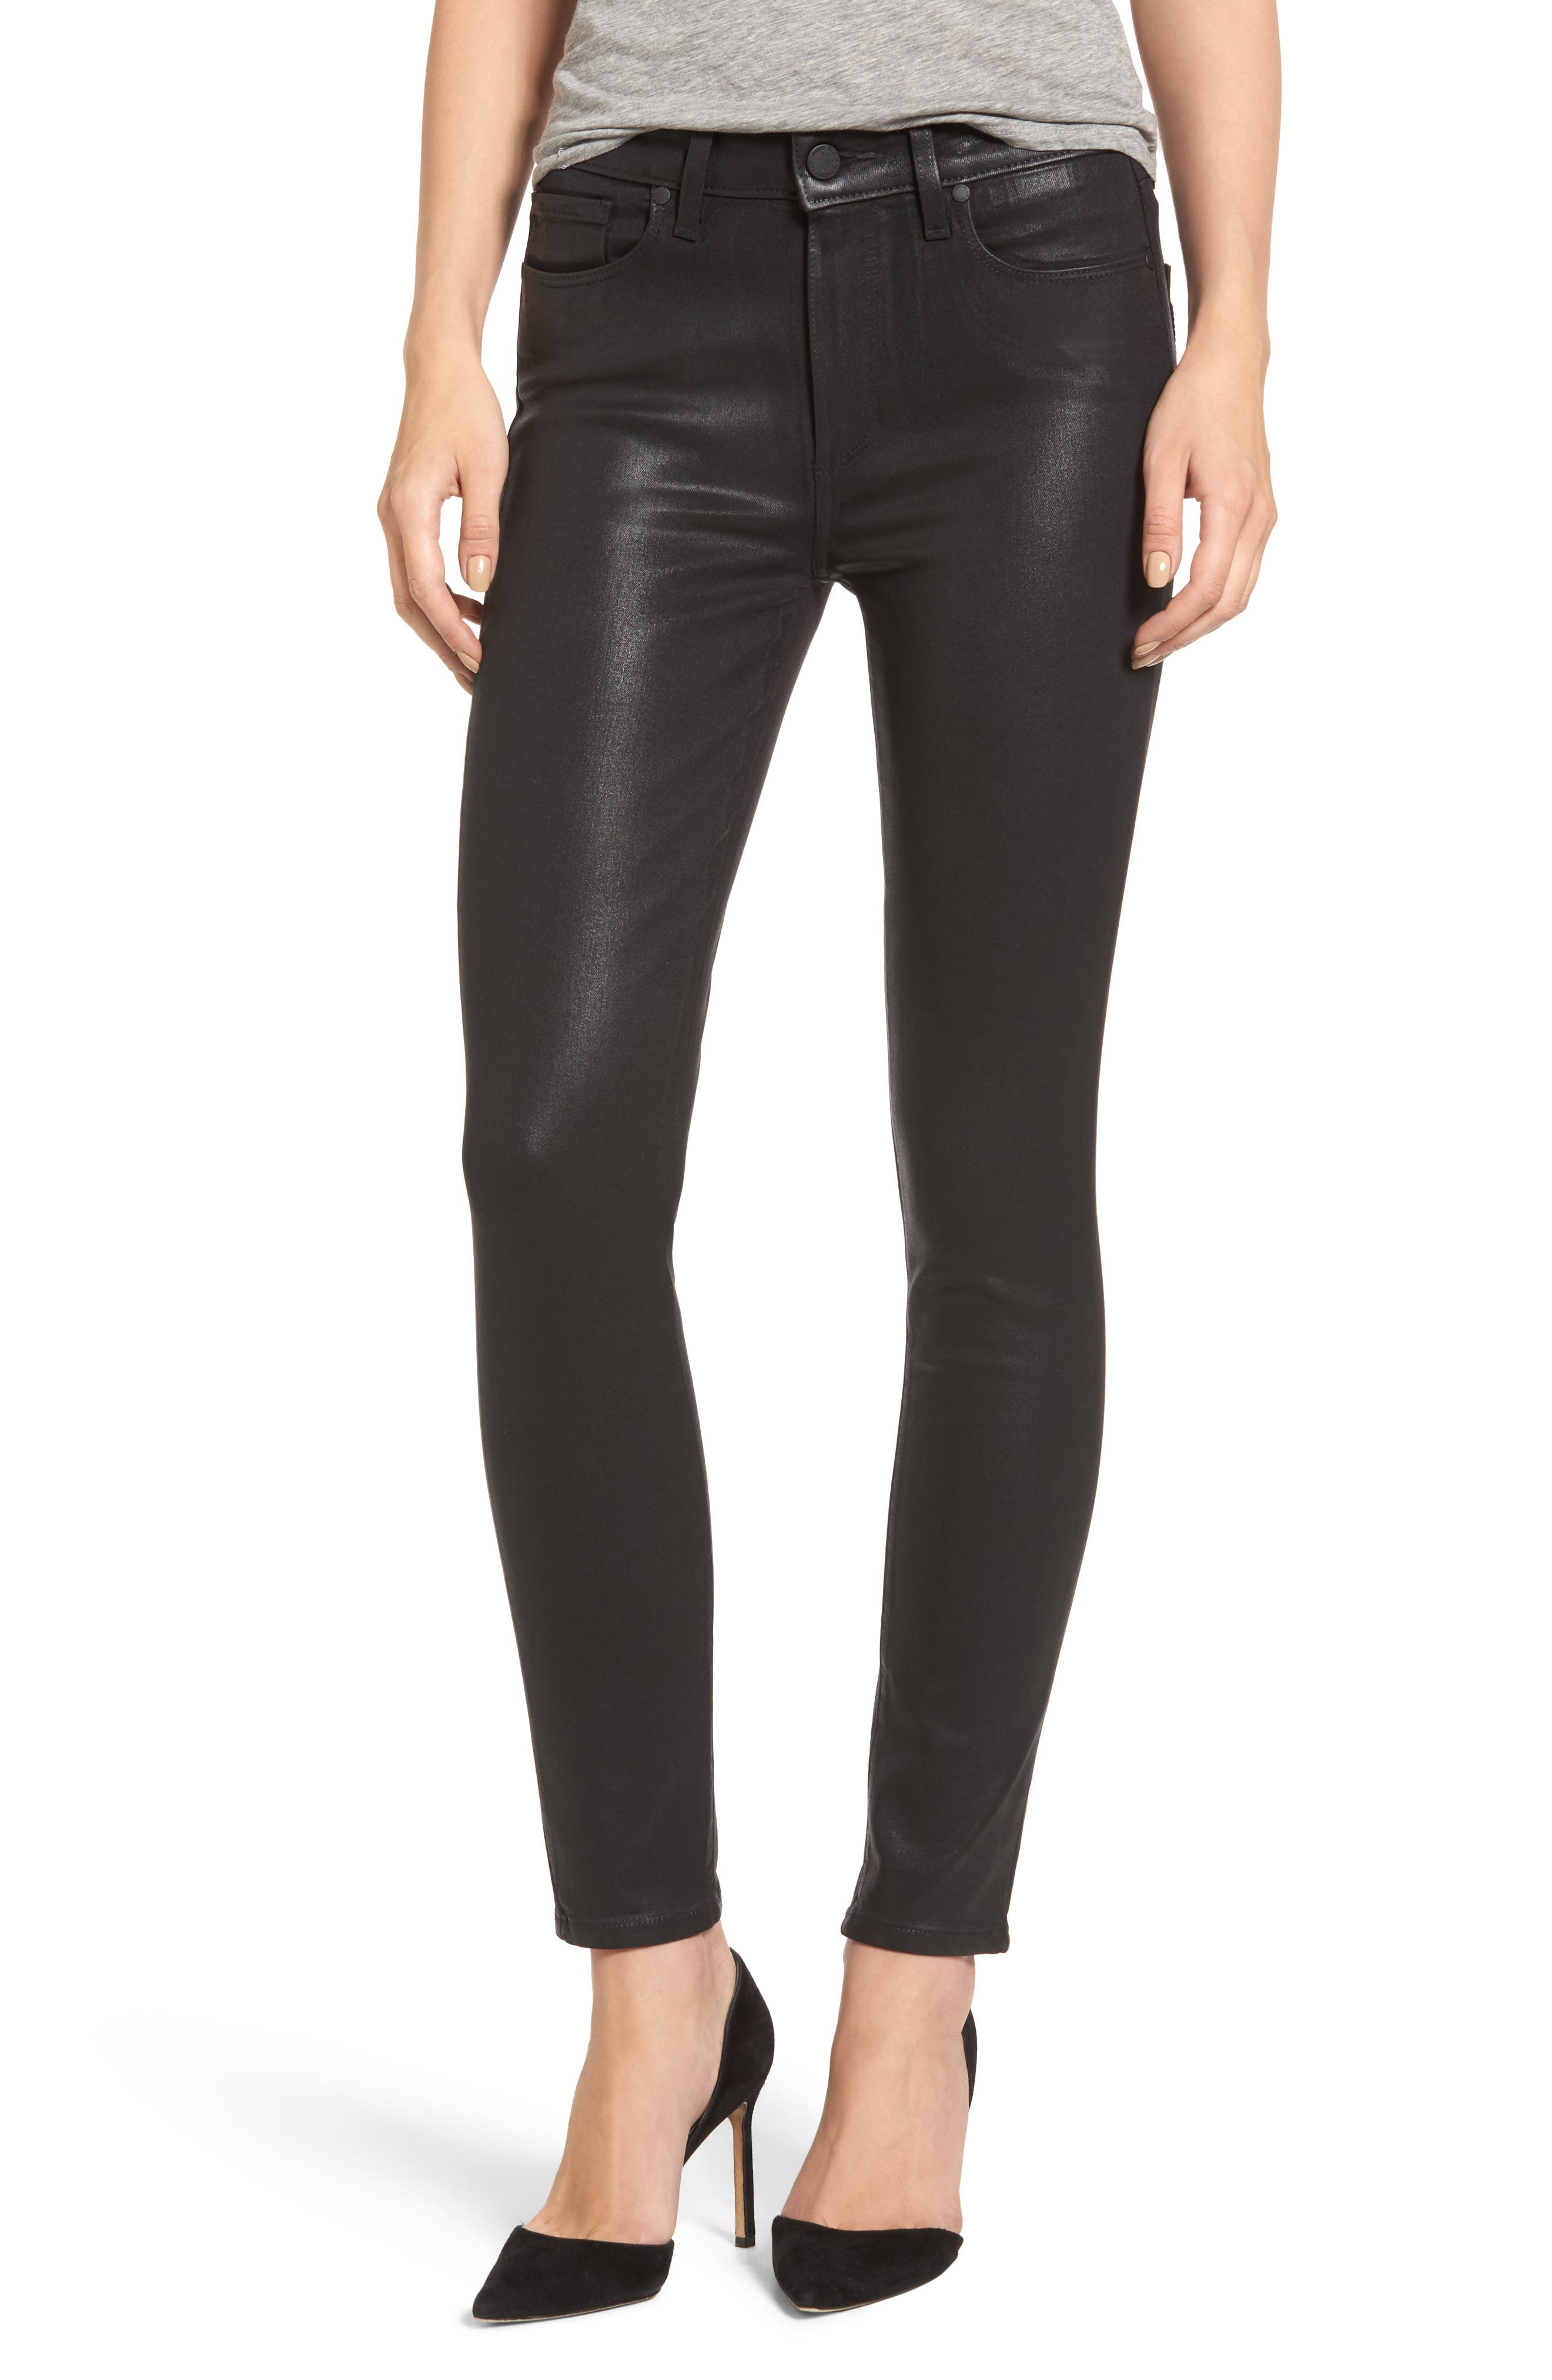 PAIGE,                             Transcend - Hoxton High Waist Ankle Skinny Jeans,                             Main thumbnail 1, color,                             LUXE BLACK COATED